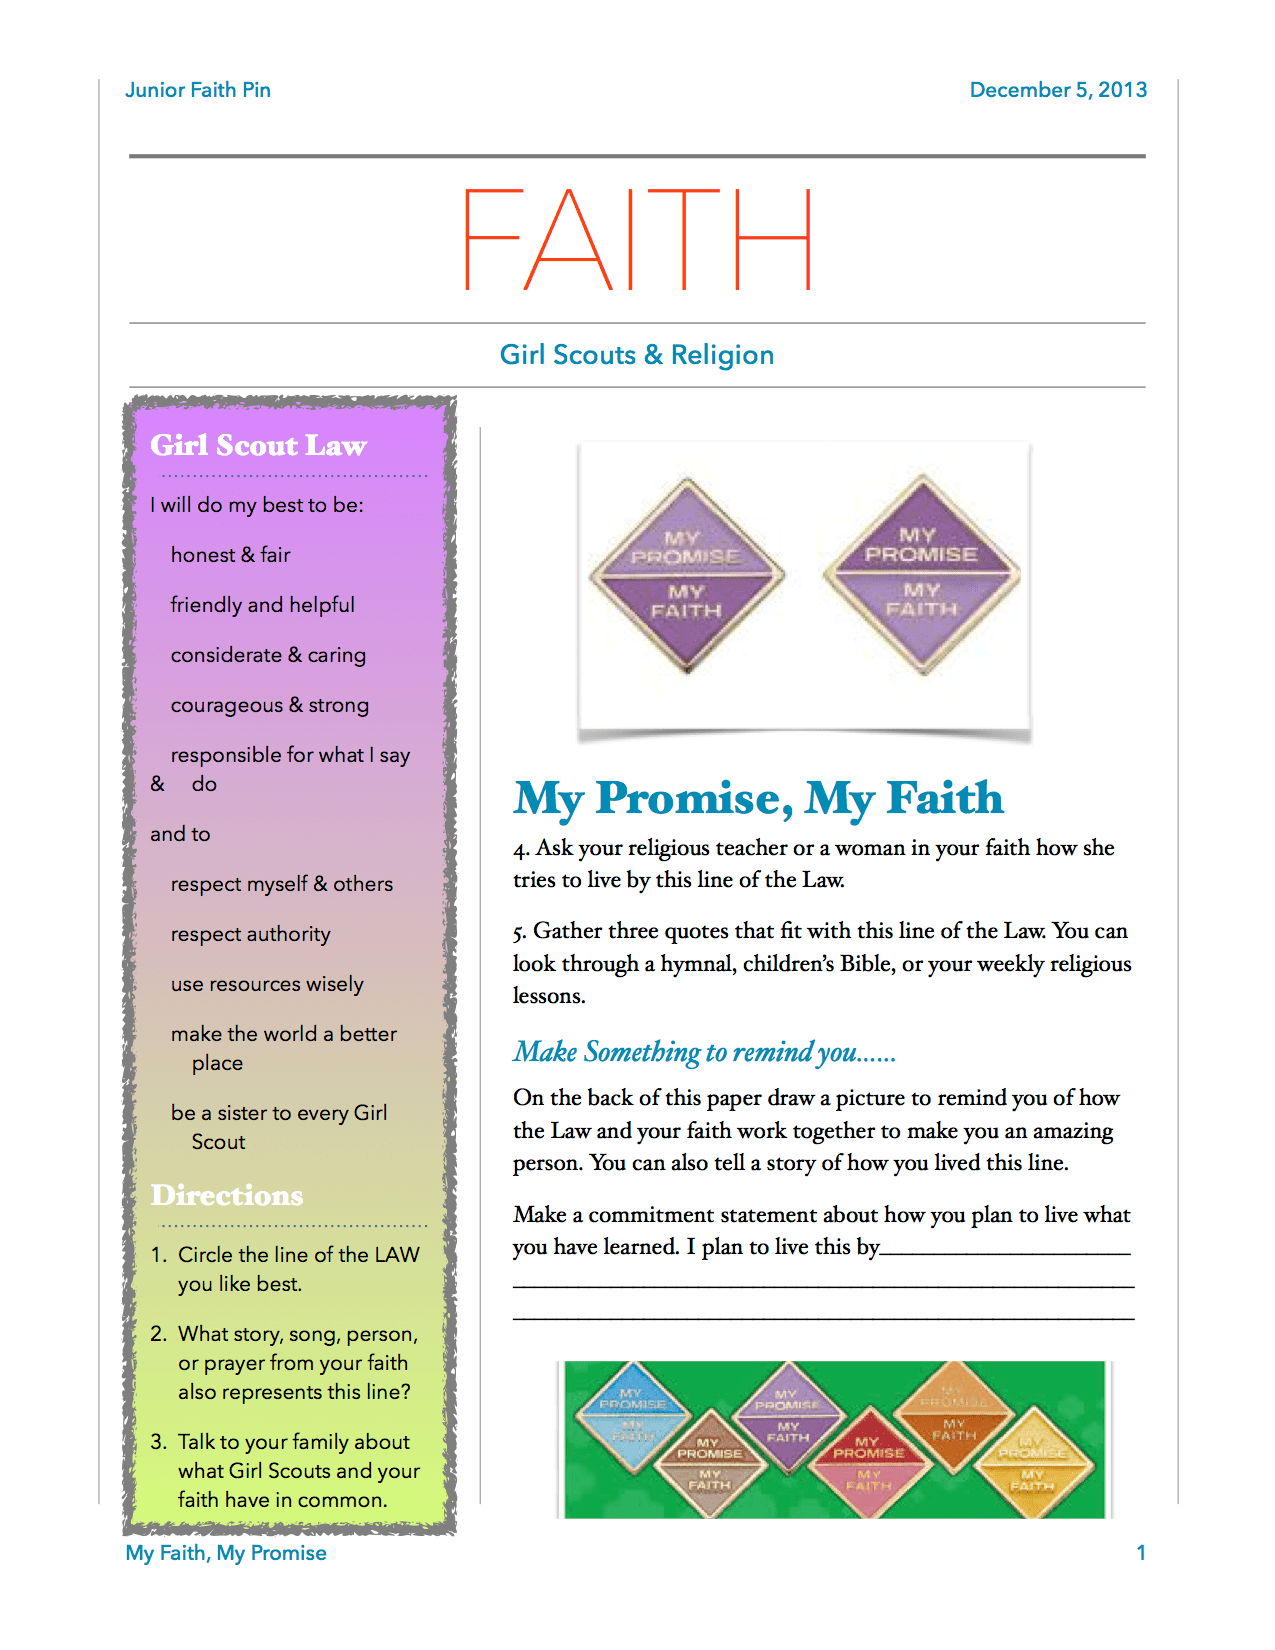 My Faith Pg 1 This Is An Easy Worksheet To Help Girls Earn Their My Faith My Way Pin